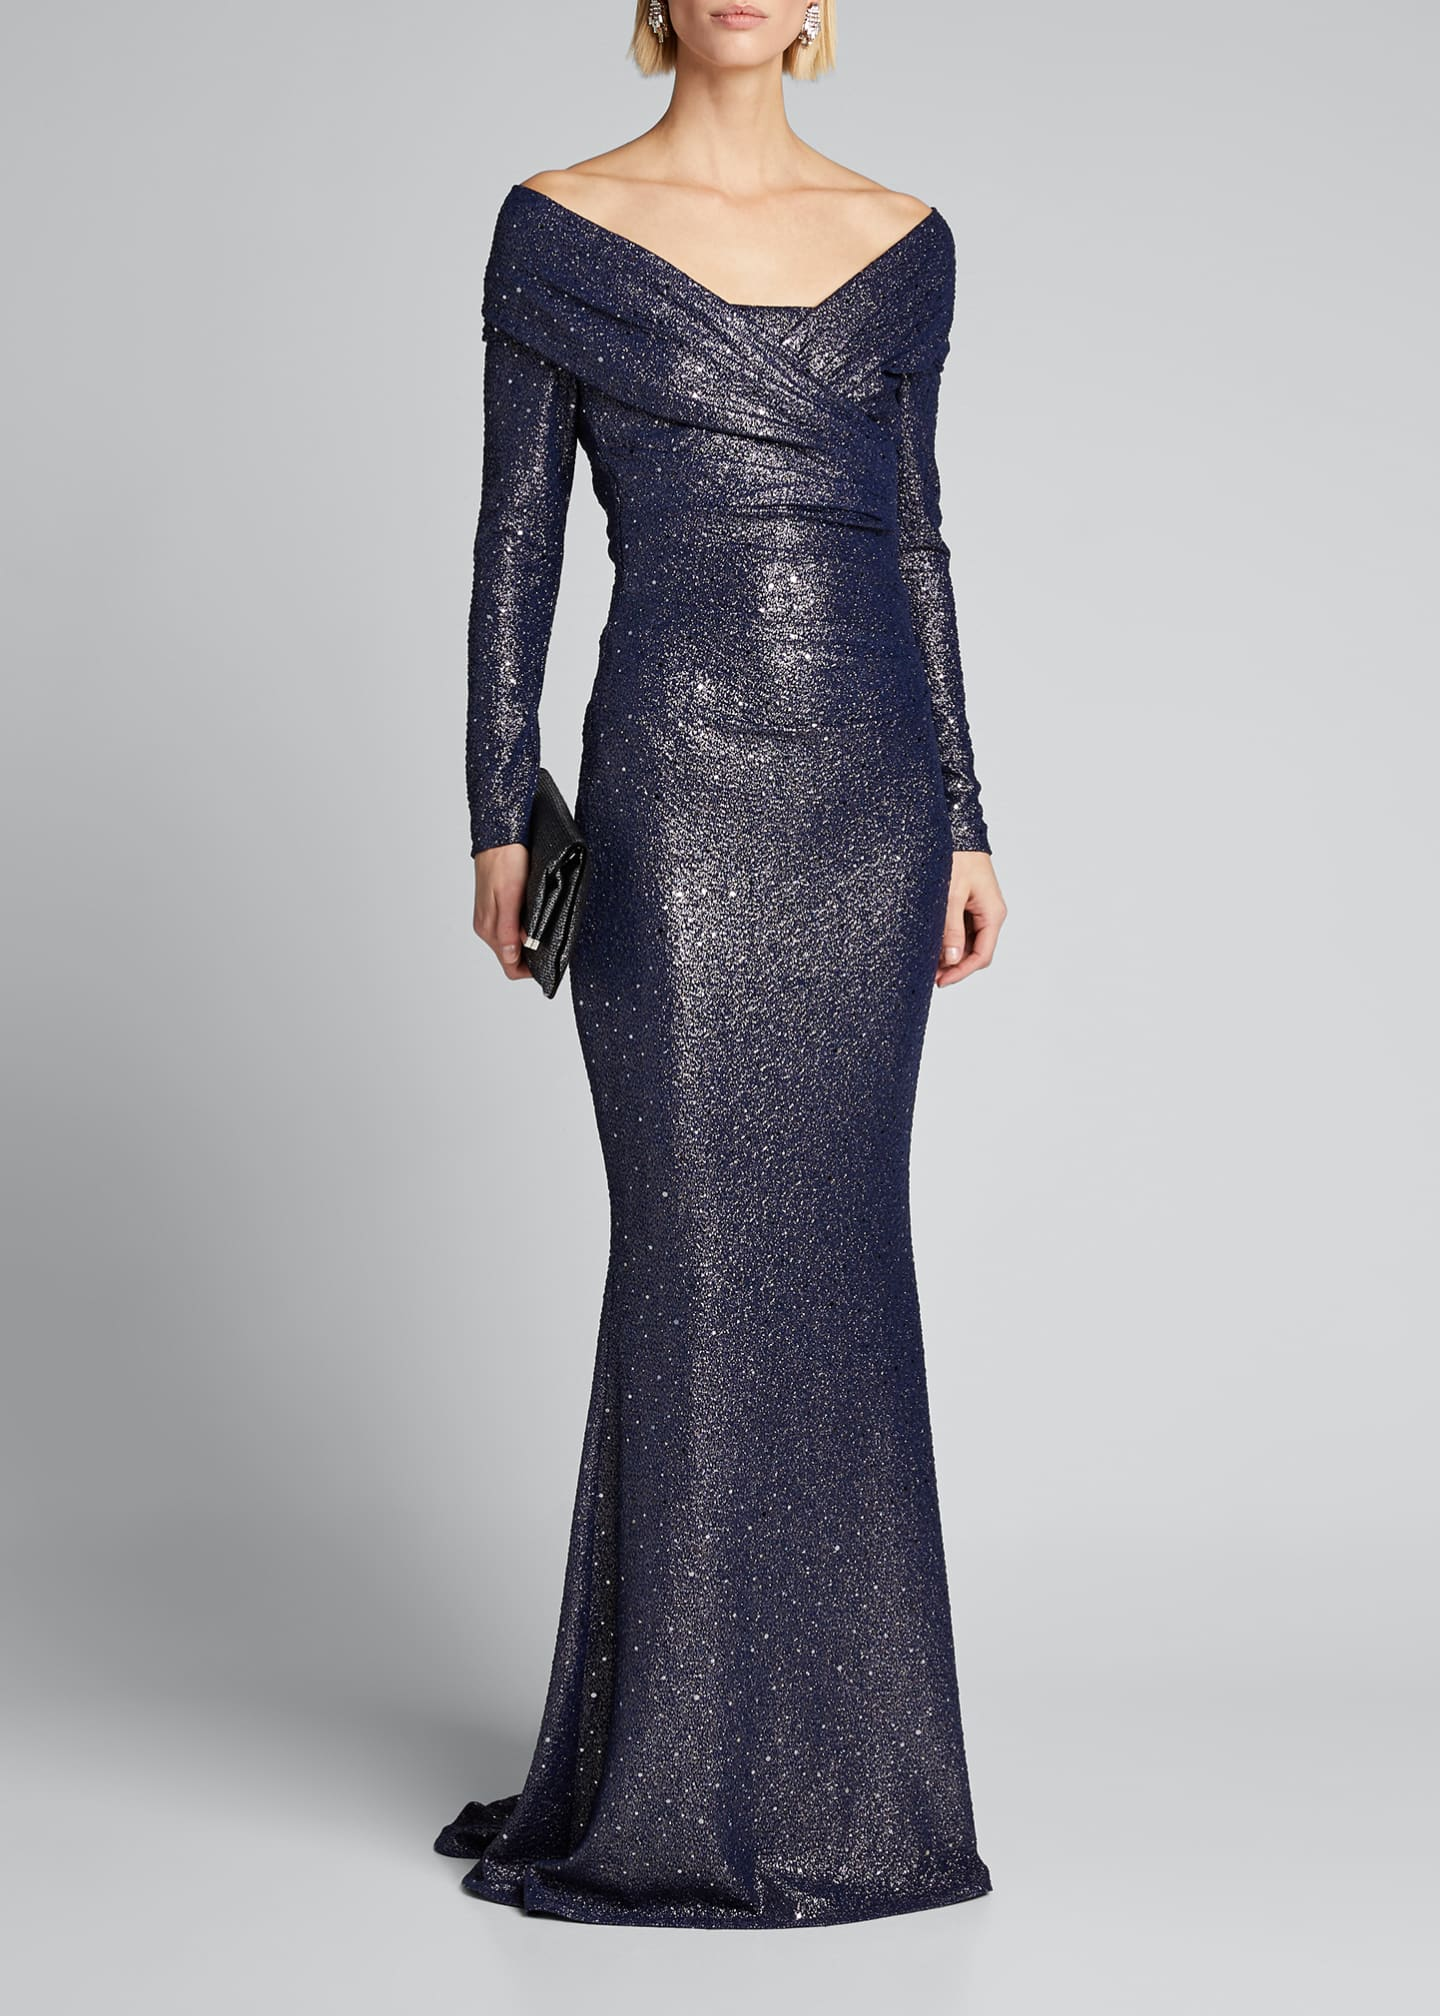 Image 1 of 5: Ruched Sequined Stretch Jersey Gown